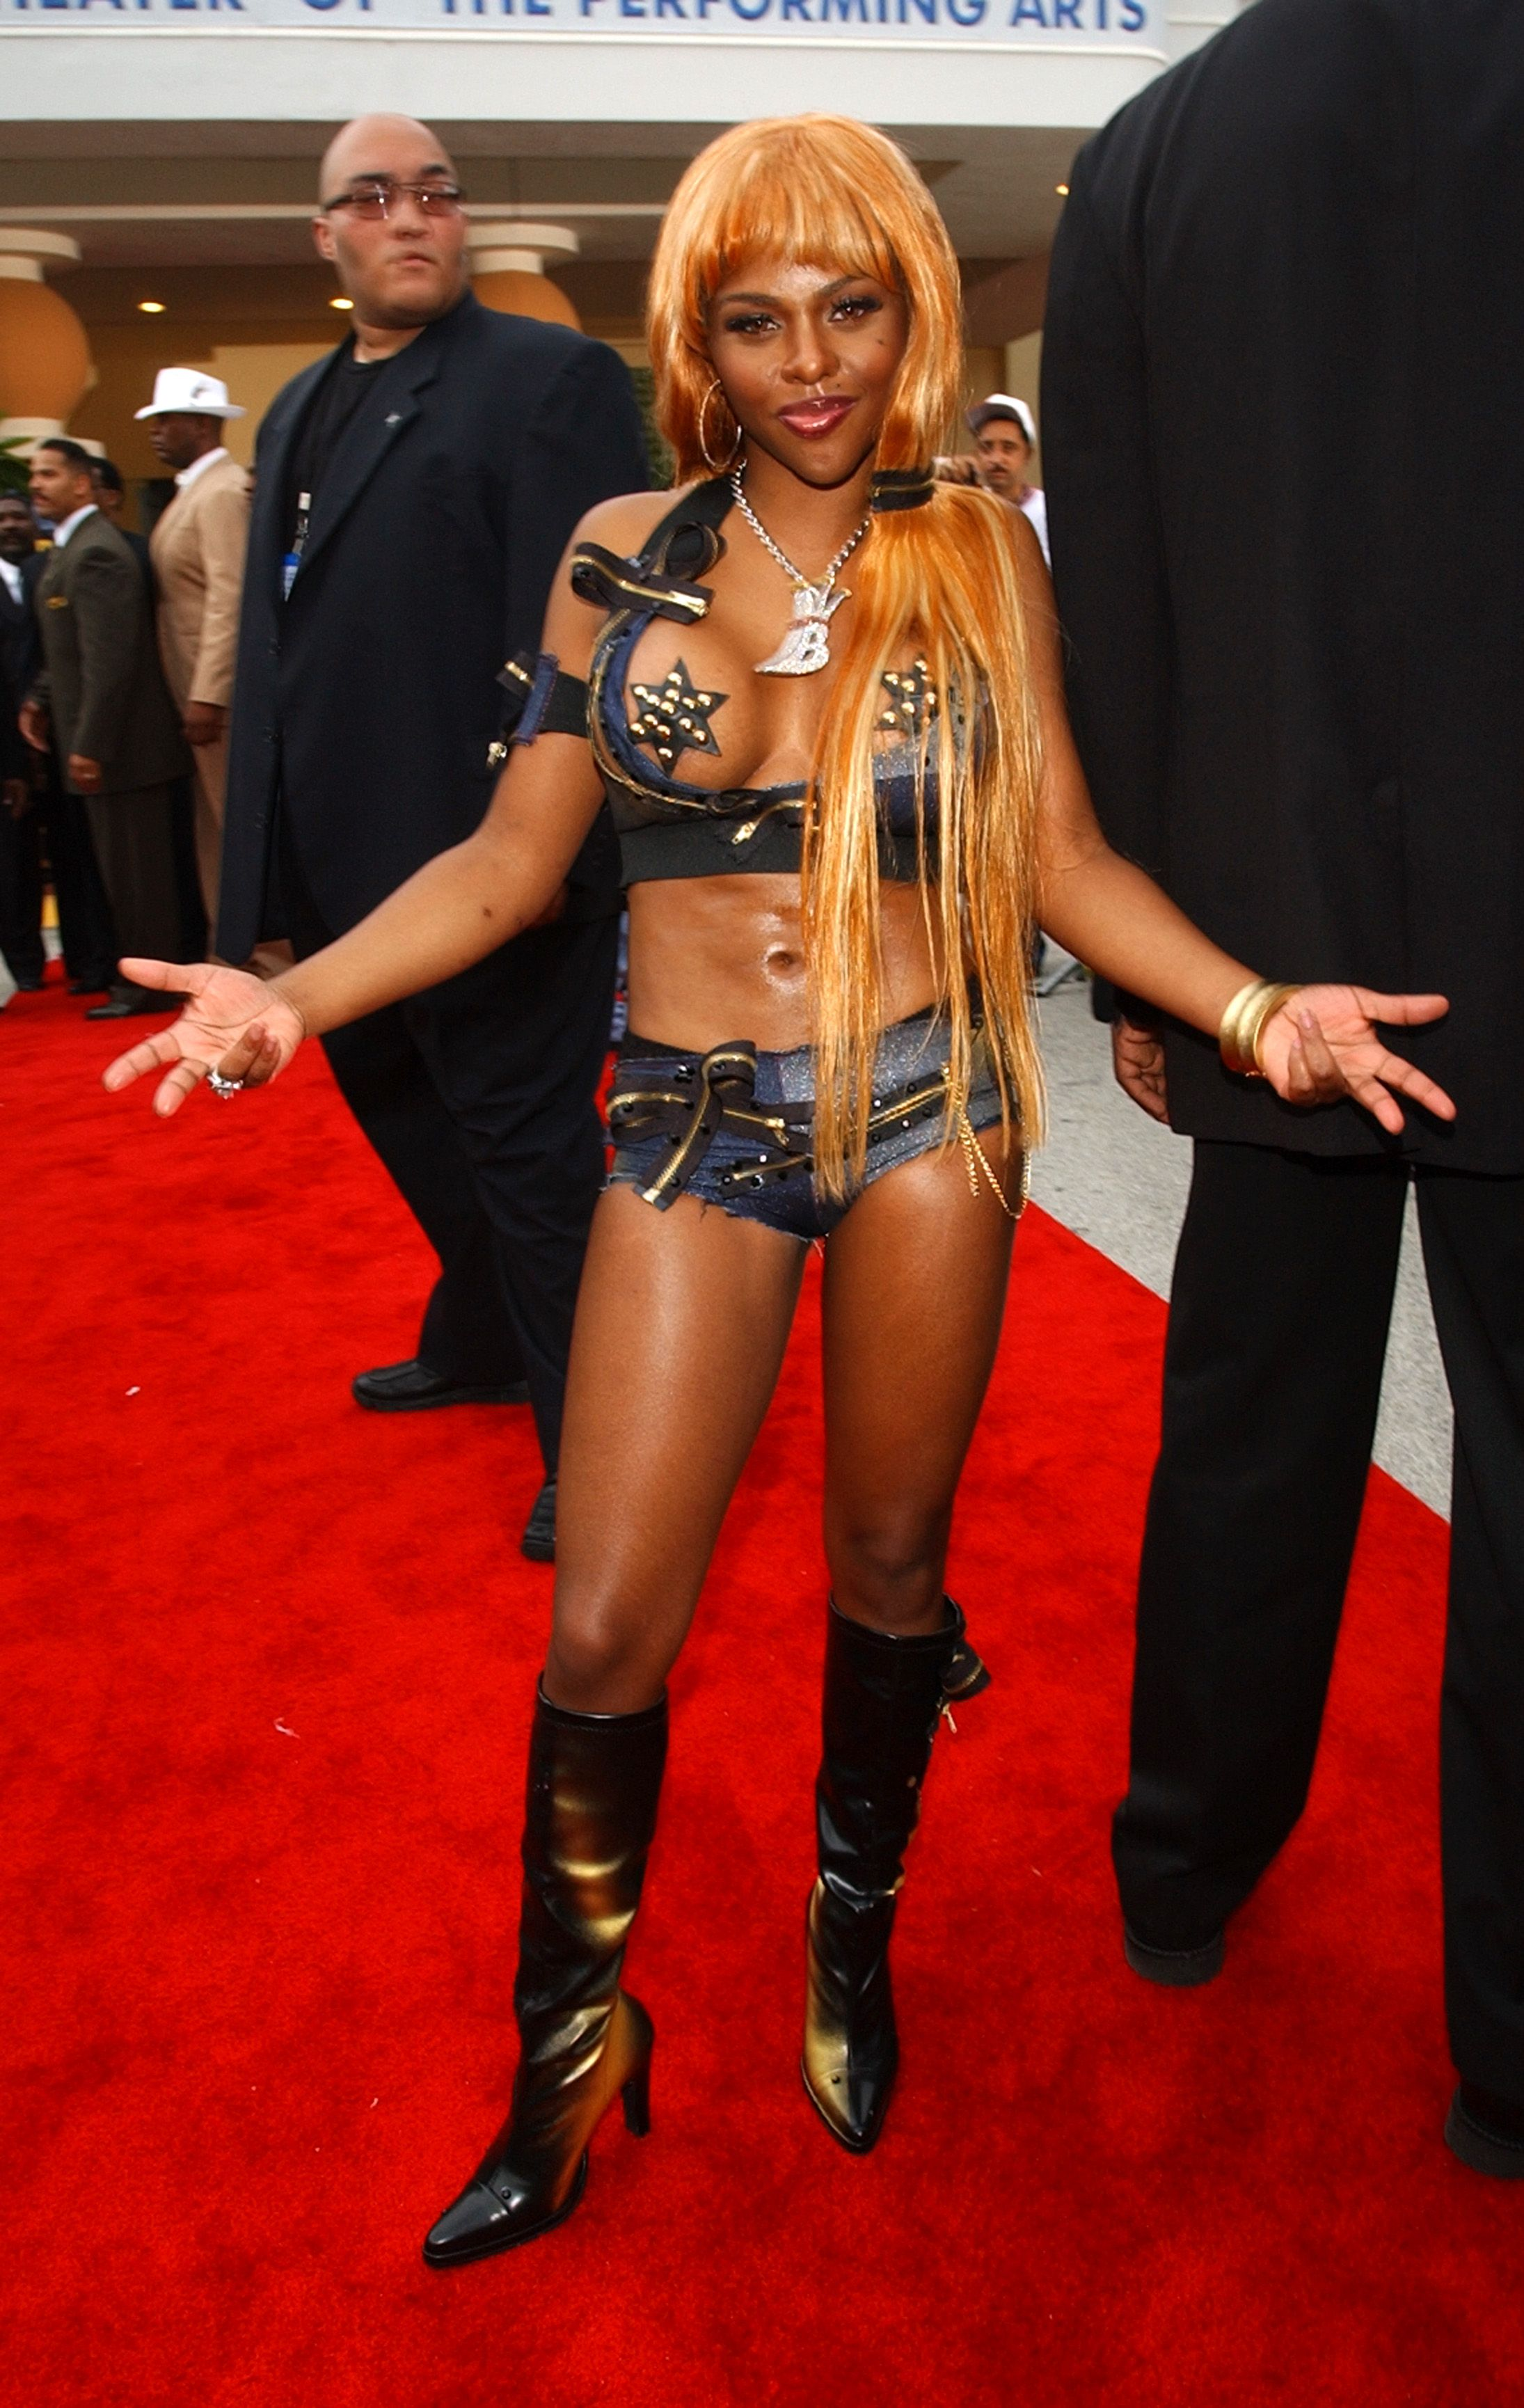 lil-kim-during-the-source-hip-hop-music-awards-2001-at-the-news-photo-1594065256.jpg